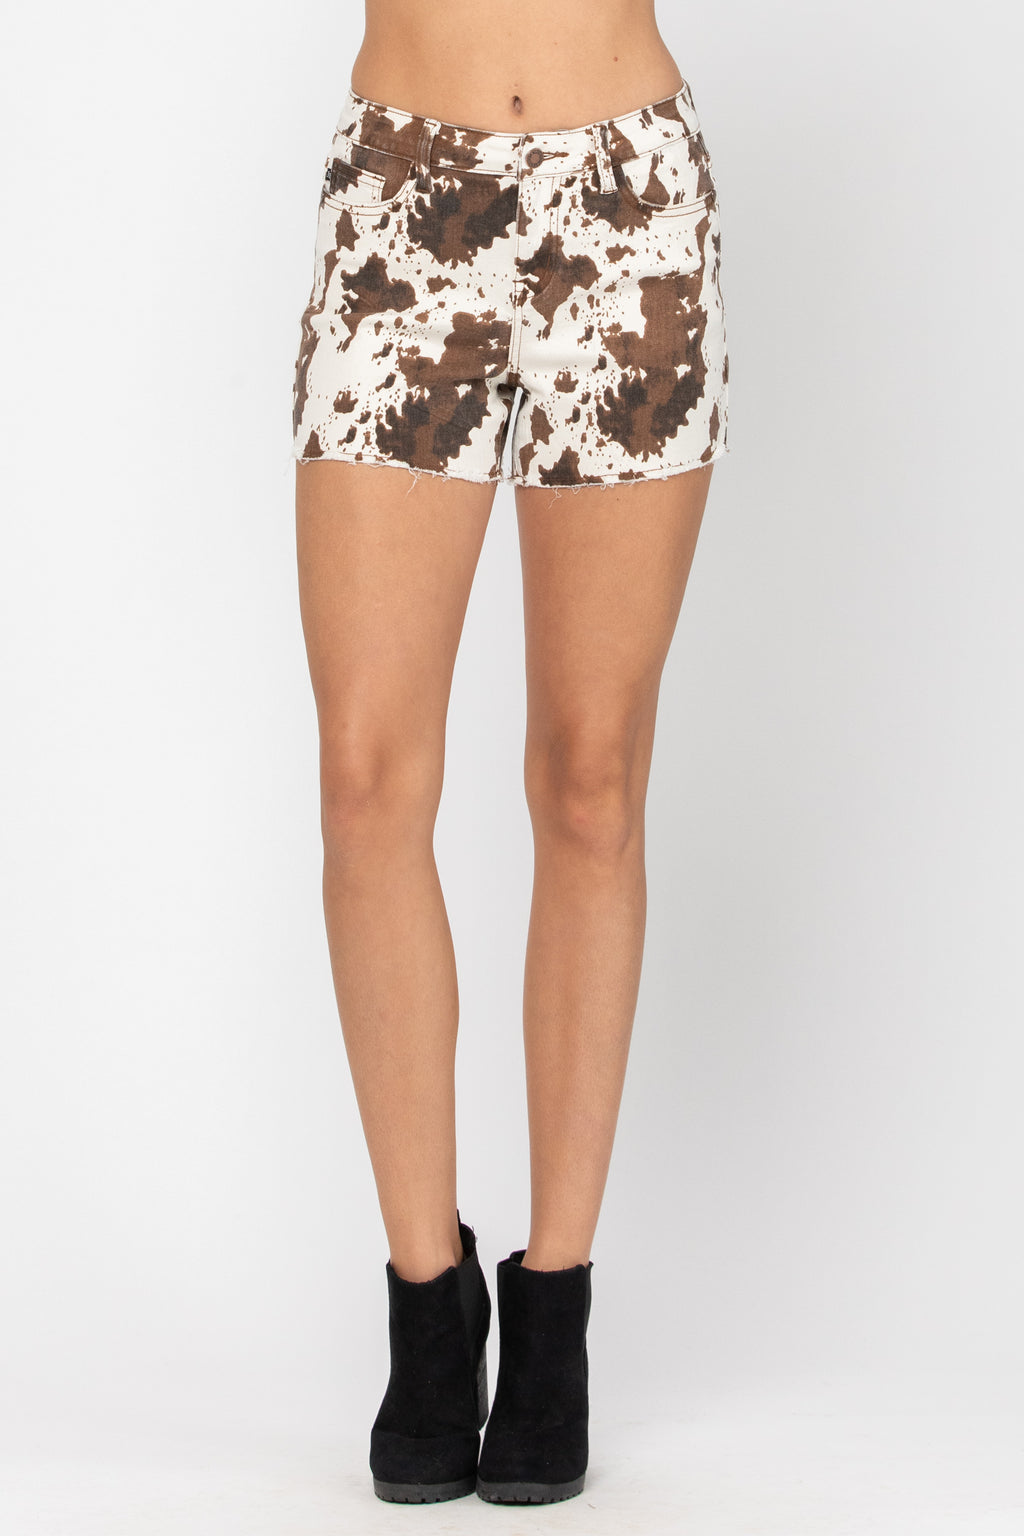 Cow Print Shorts - PLUS